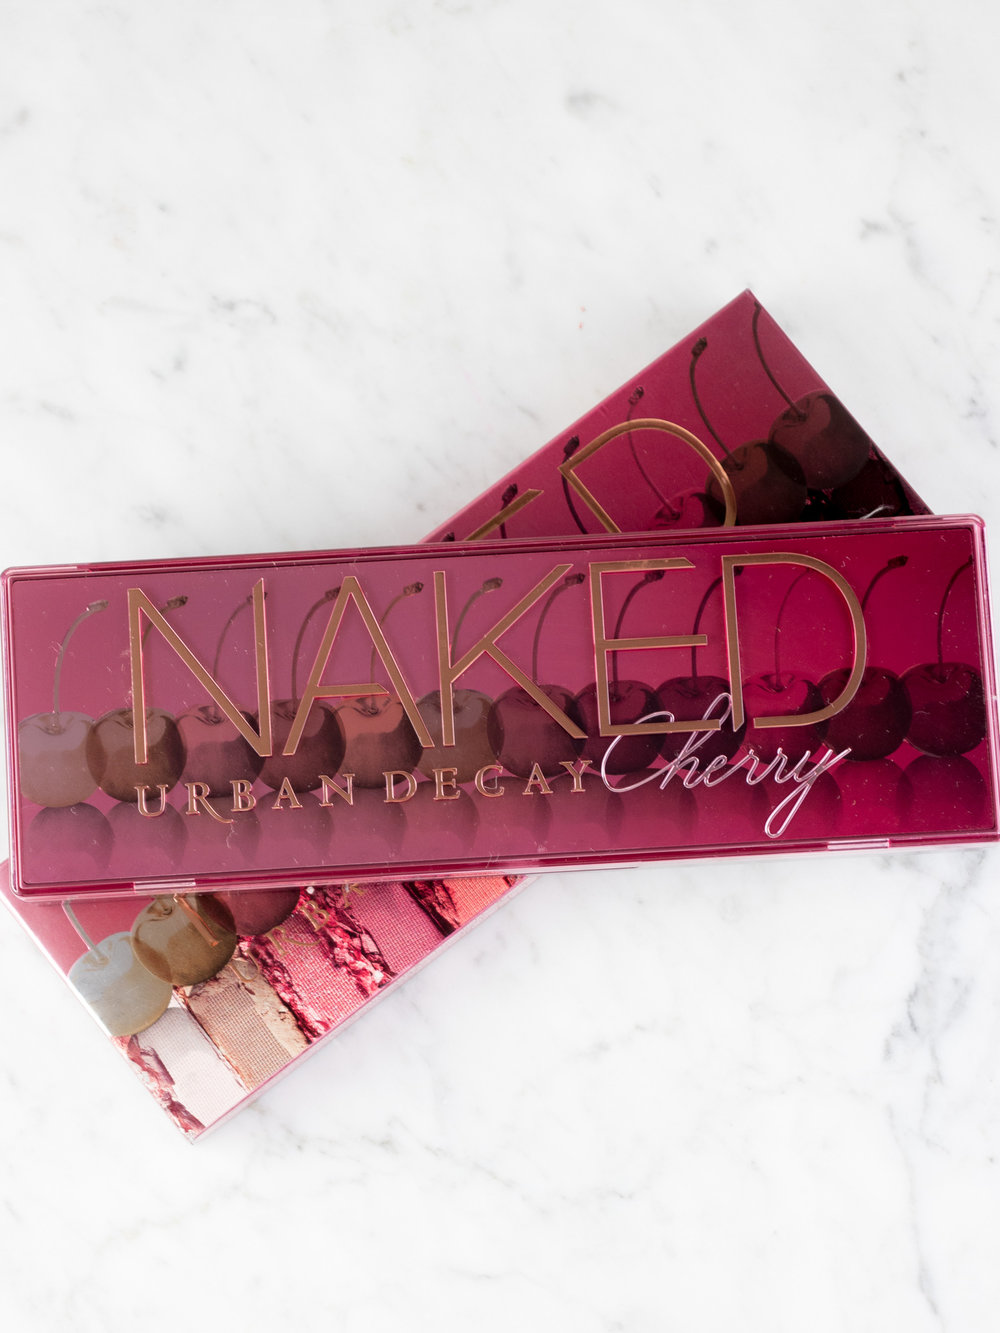 Urban Decay NAKED Cherry Palette Closed